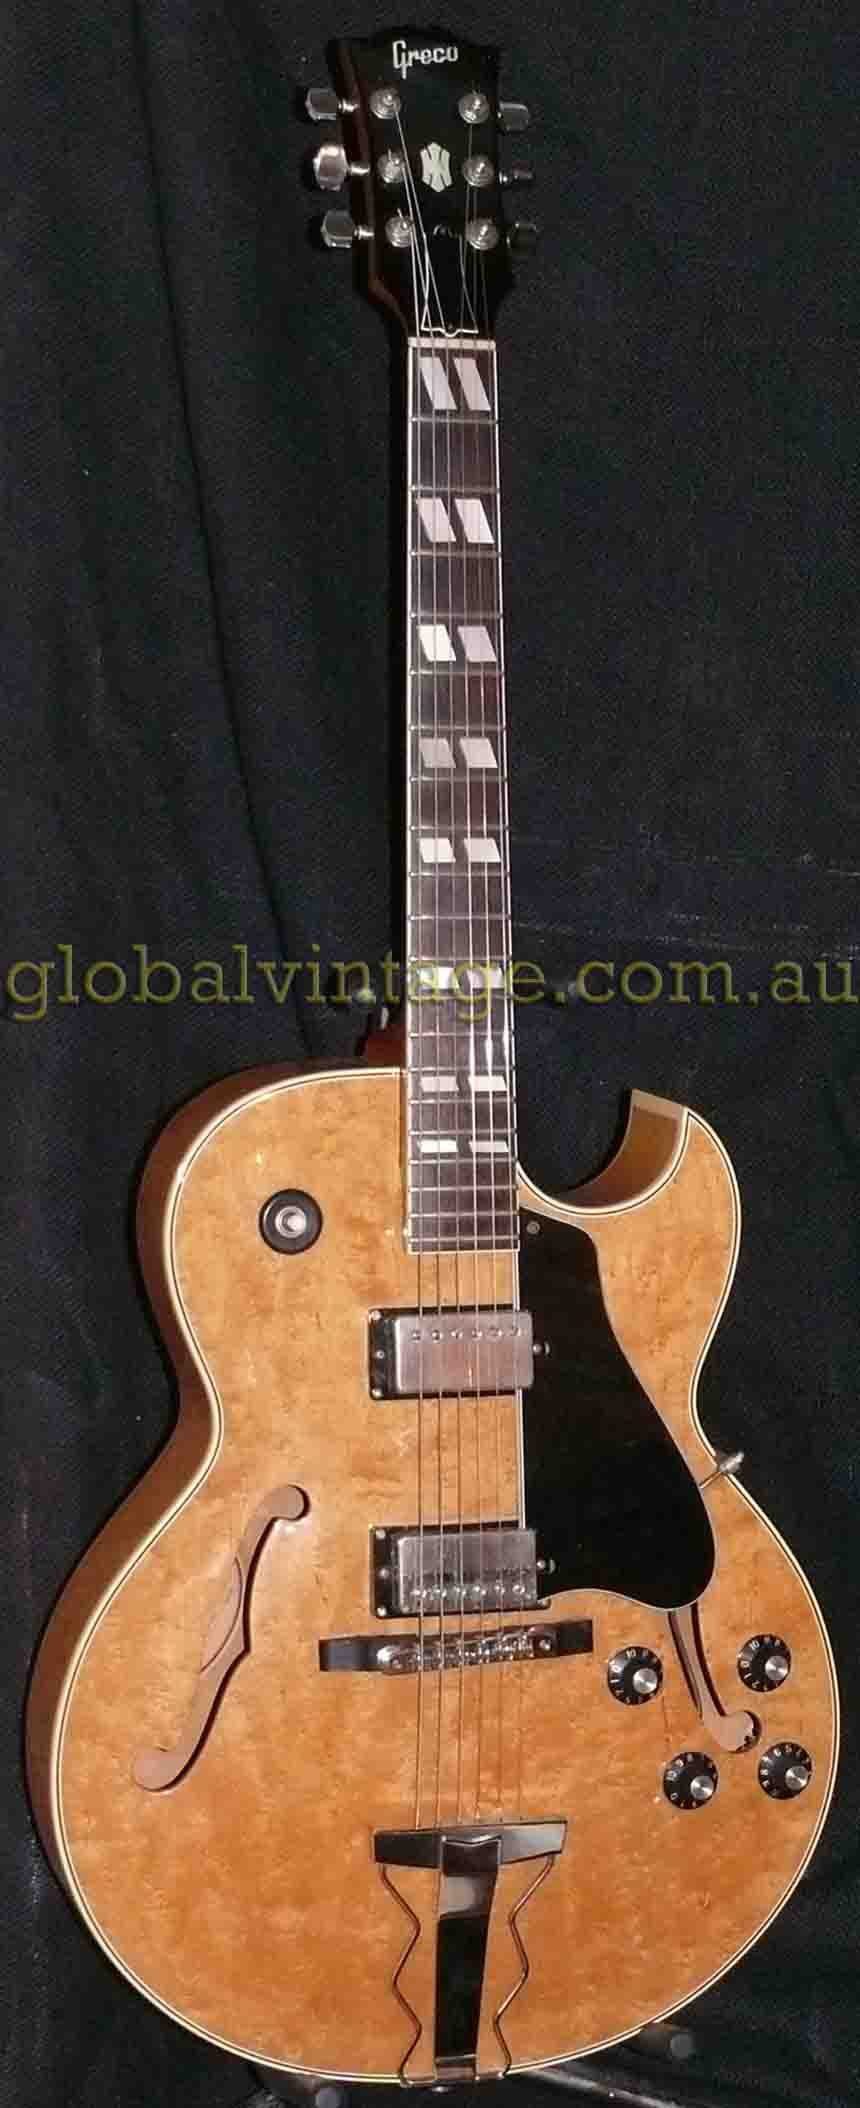 Apologise, Global vintage guitars opinion